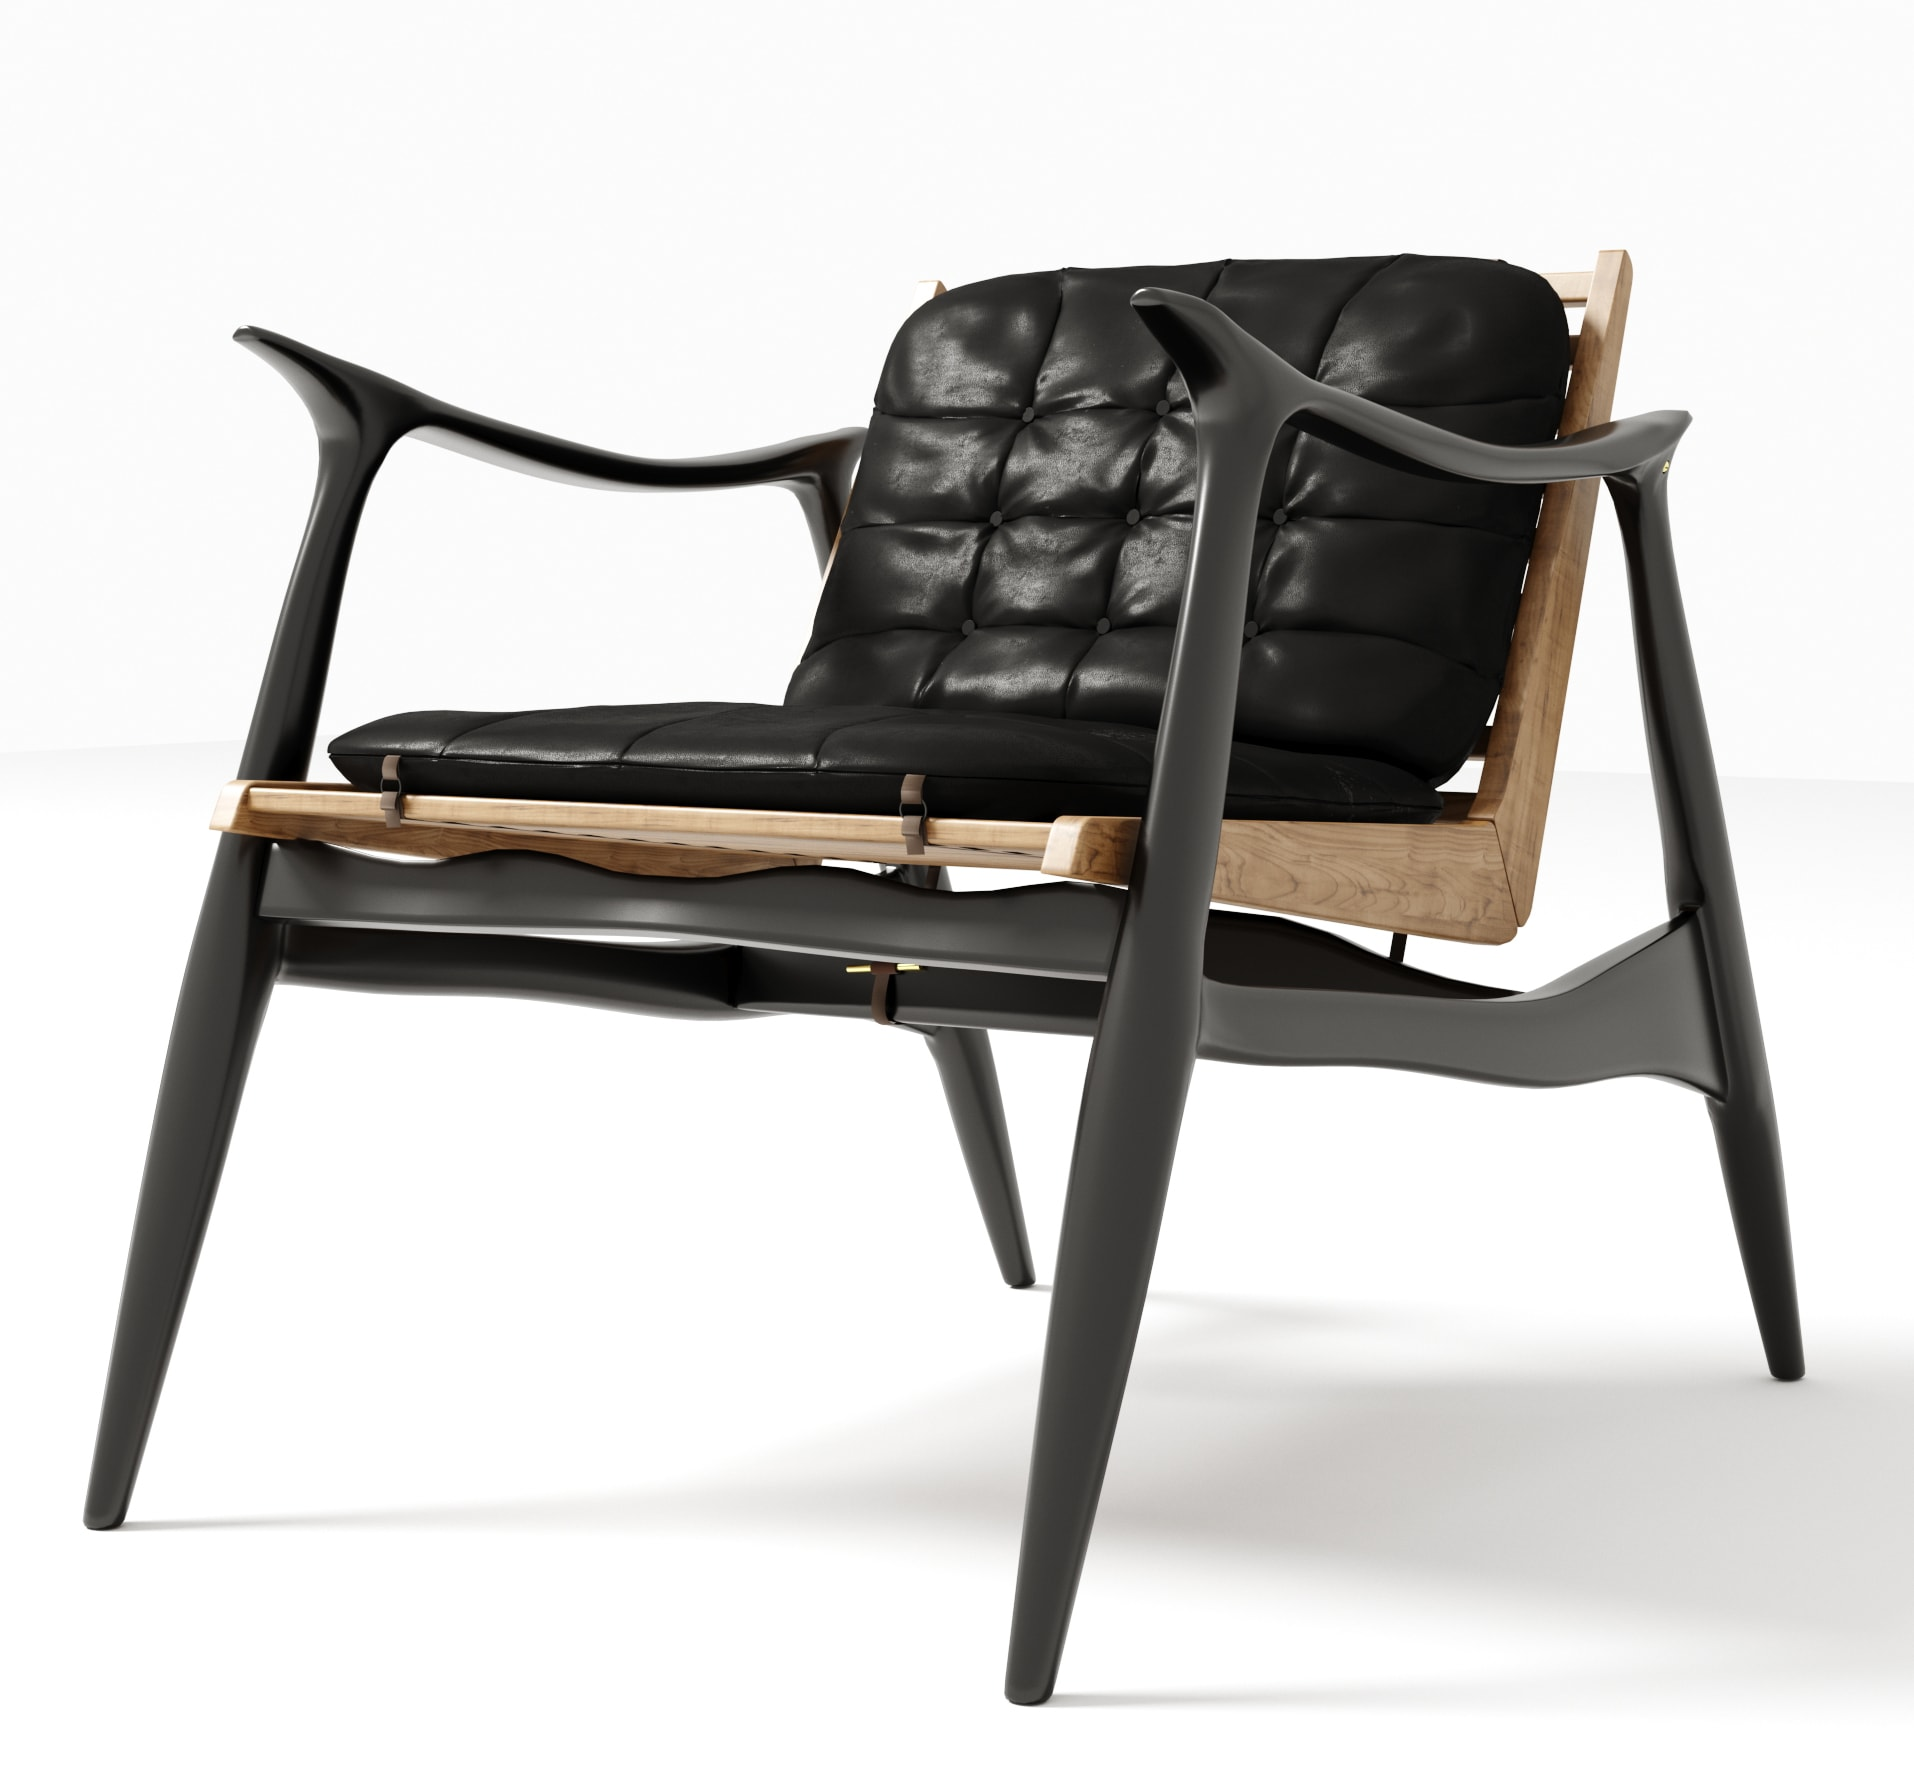 //www.vpva.pt/wp-content/uploads/2018/02/vpva.pt-3d-render-archviz-architecture-project-Atra-Lounge-Chair-Model-3_1.jpg